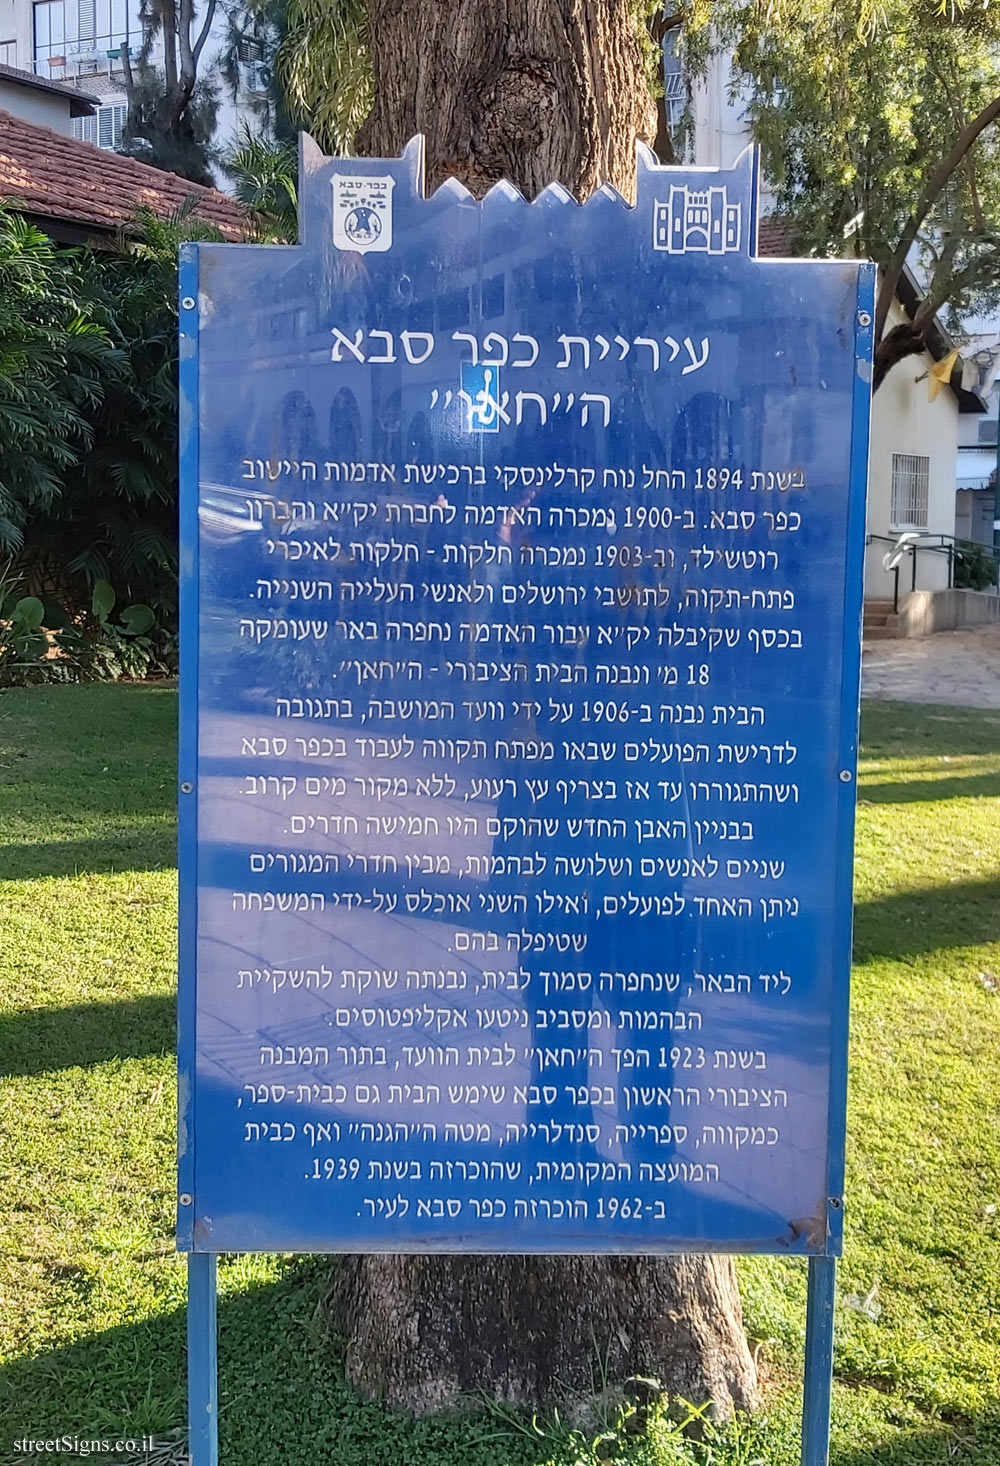 Kfar Saba - Heritage Sites in Israel - City Hall The Khan